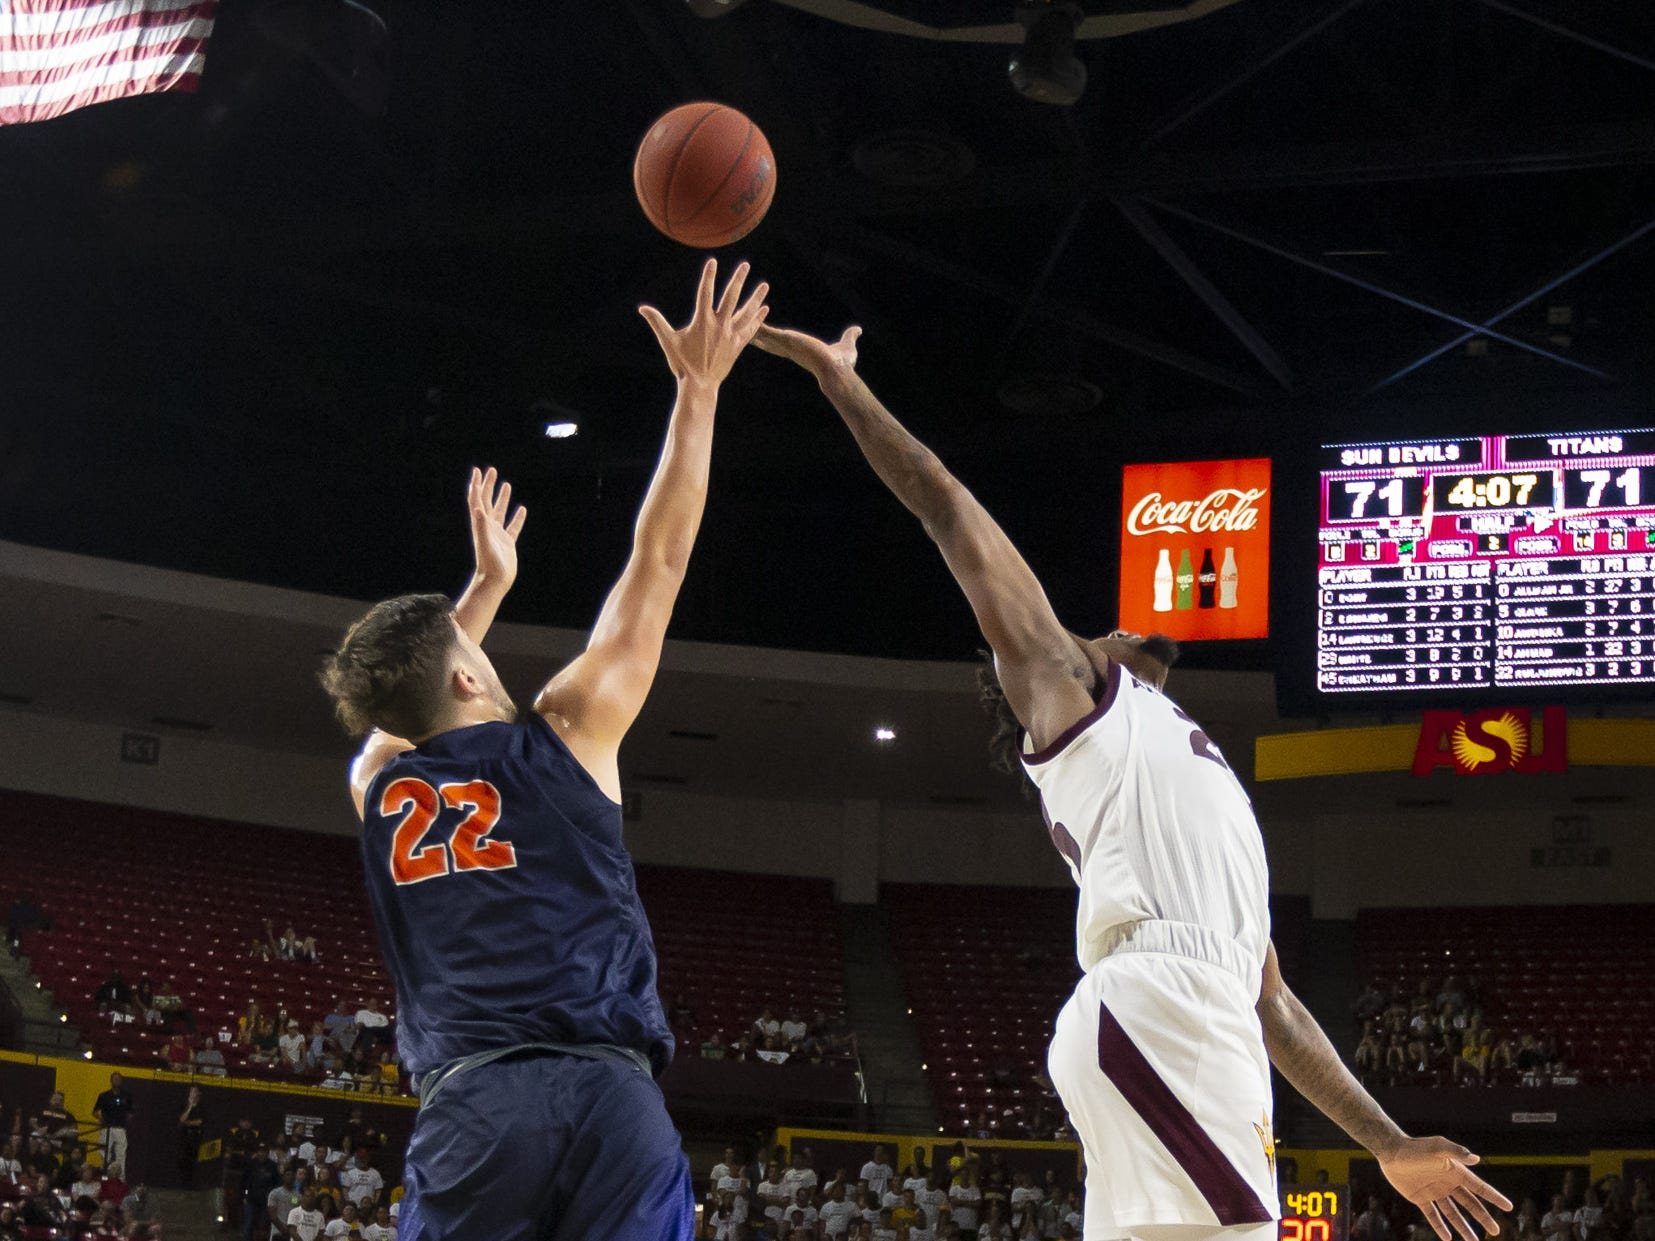 Forward Amel Kuljuhovic (22) of the Cal State Fullerton Titans and forward Romello White (23) of the Arizona State Sun Devils reach for the ball at Wells Fargo Arena on Tuesday, November 6, 2018 in Tempe, Arizona.